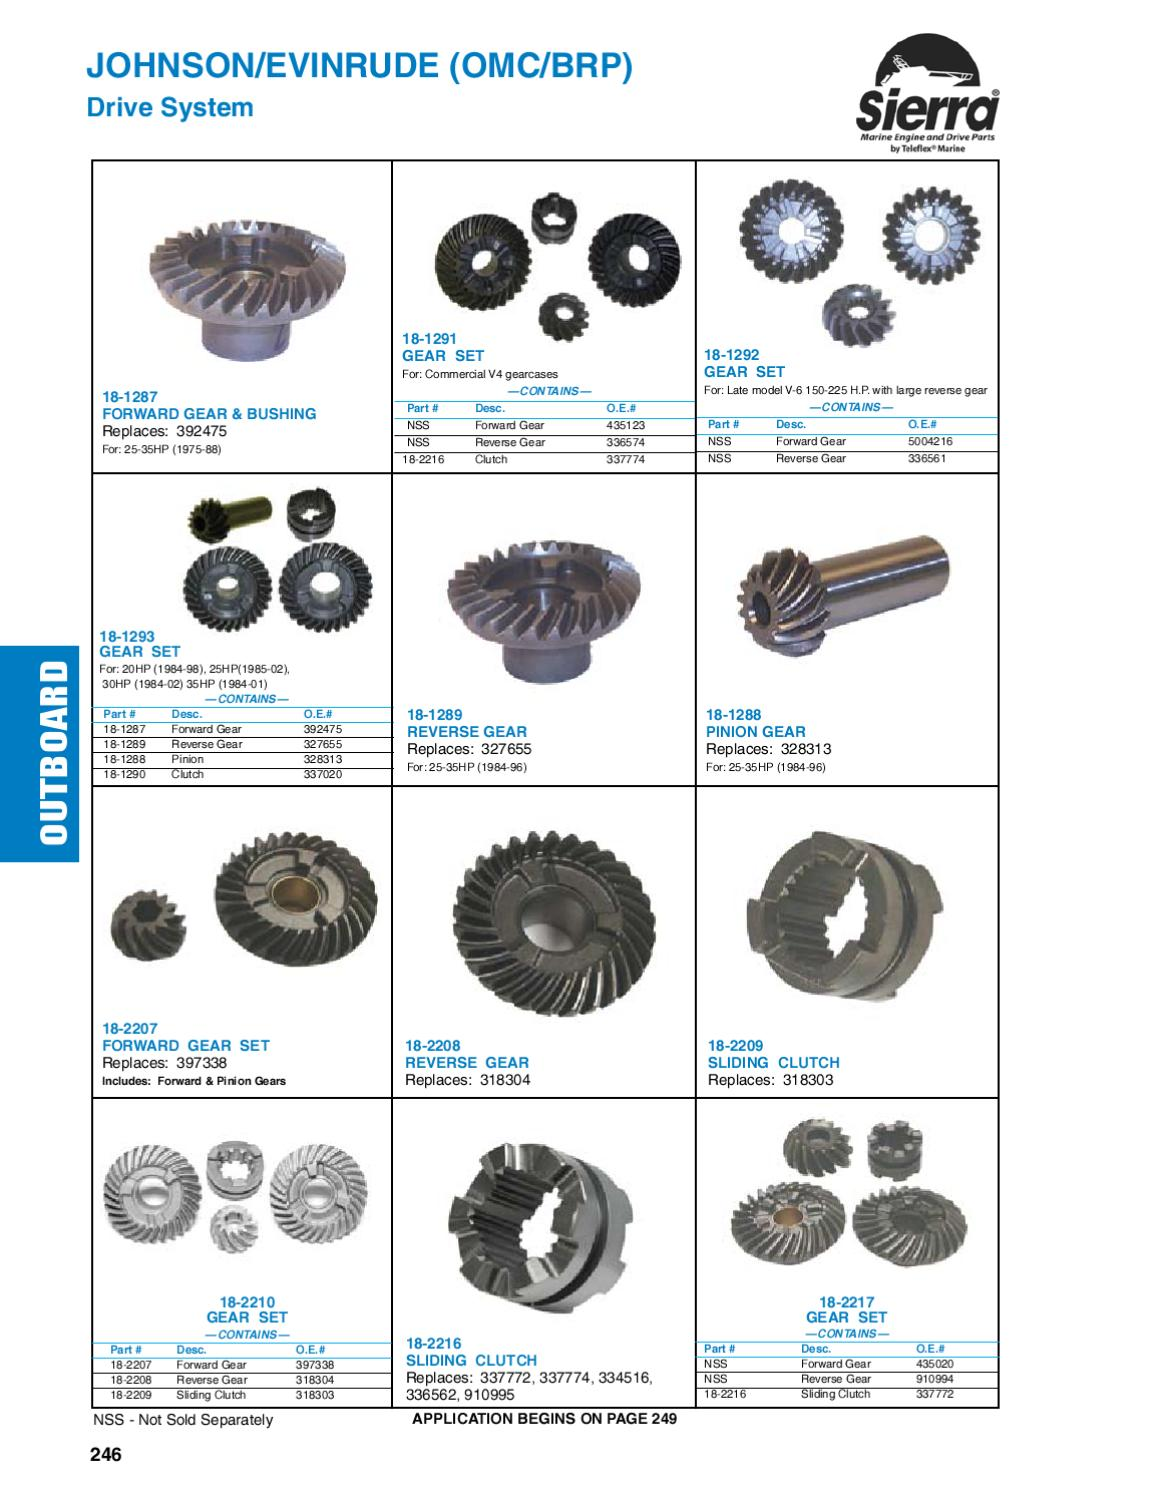 Sierra Marine Engine and Drive Parts for Johnson Evinrude